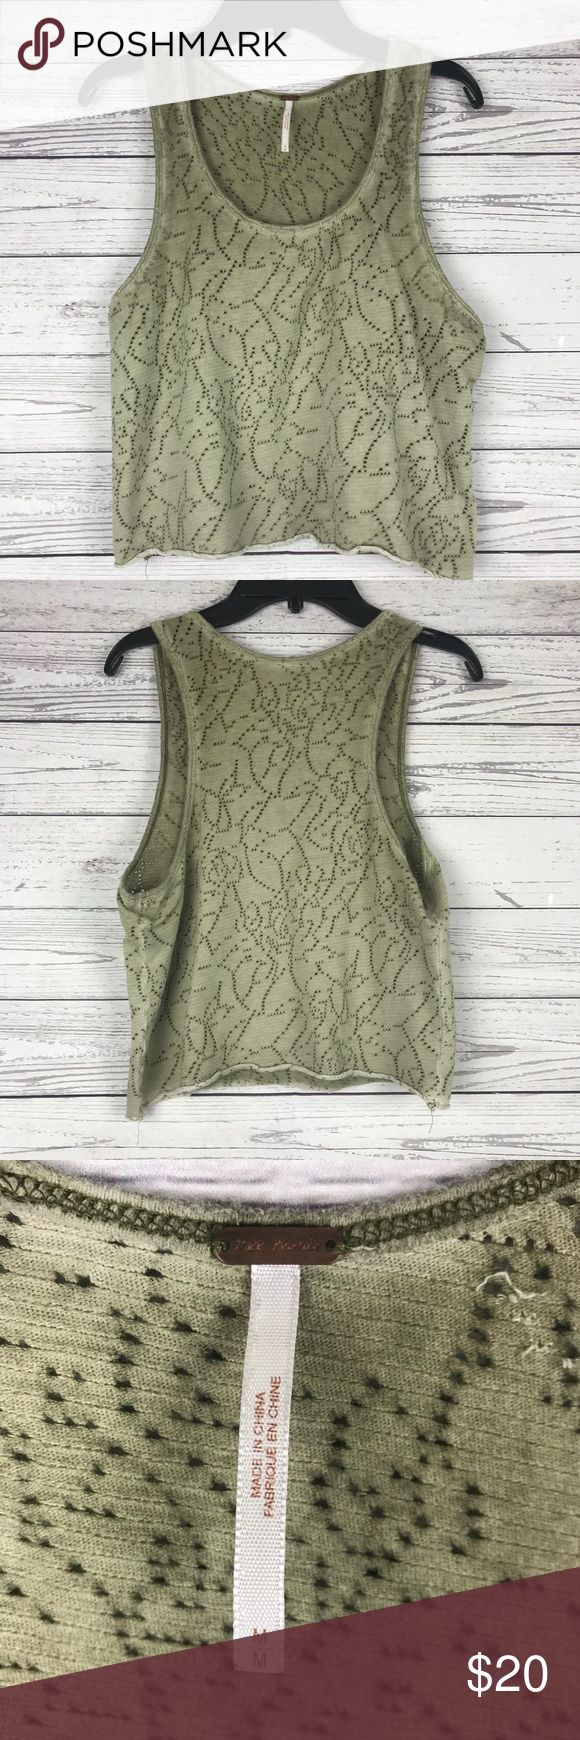 Free People Crop Top Perforated Distressed Design Free People Distressed crop top with perforated sleeveless design. Gorgeous neutral green which works well for all seasons. Size medium. Free People Tops Crop Tops